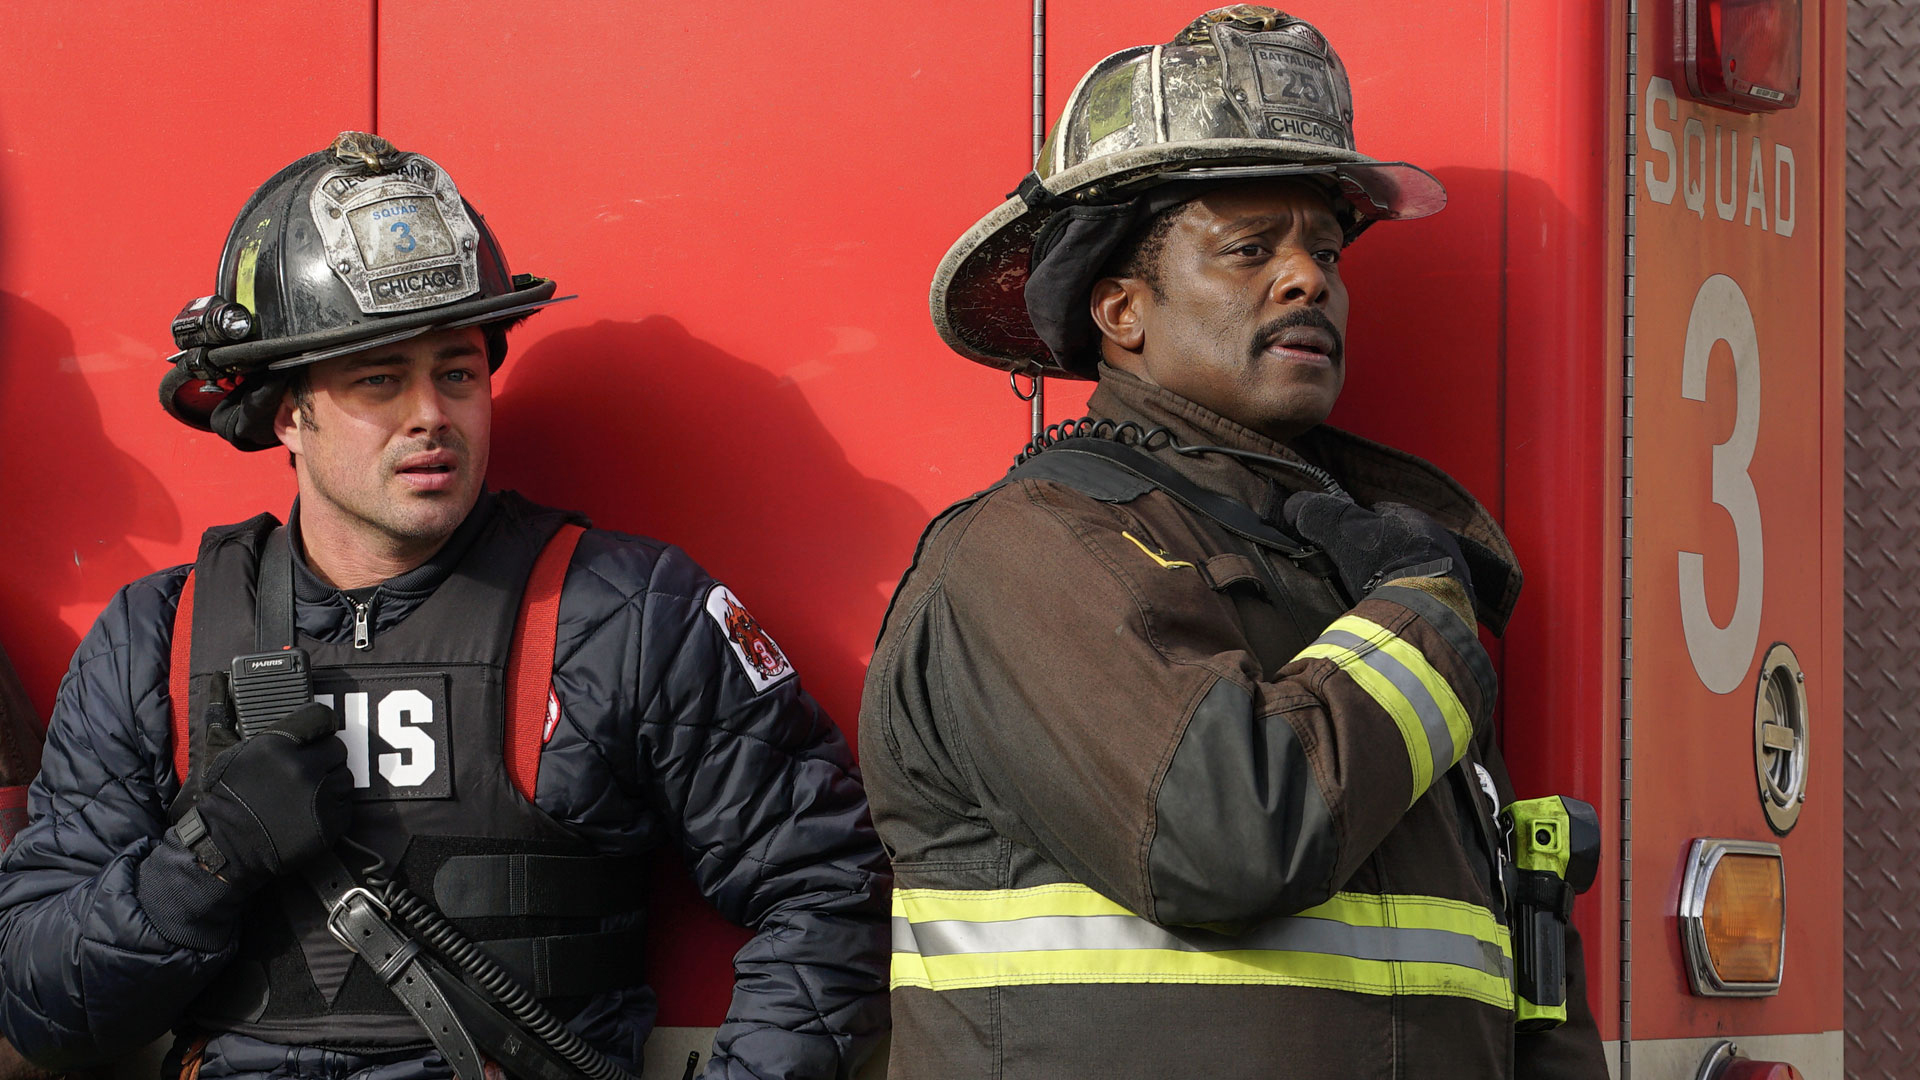 Chicago Fire Wallpaper For Computer